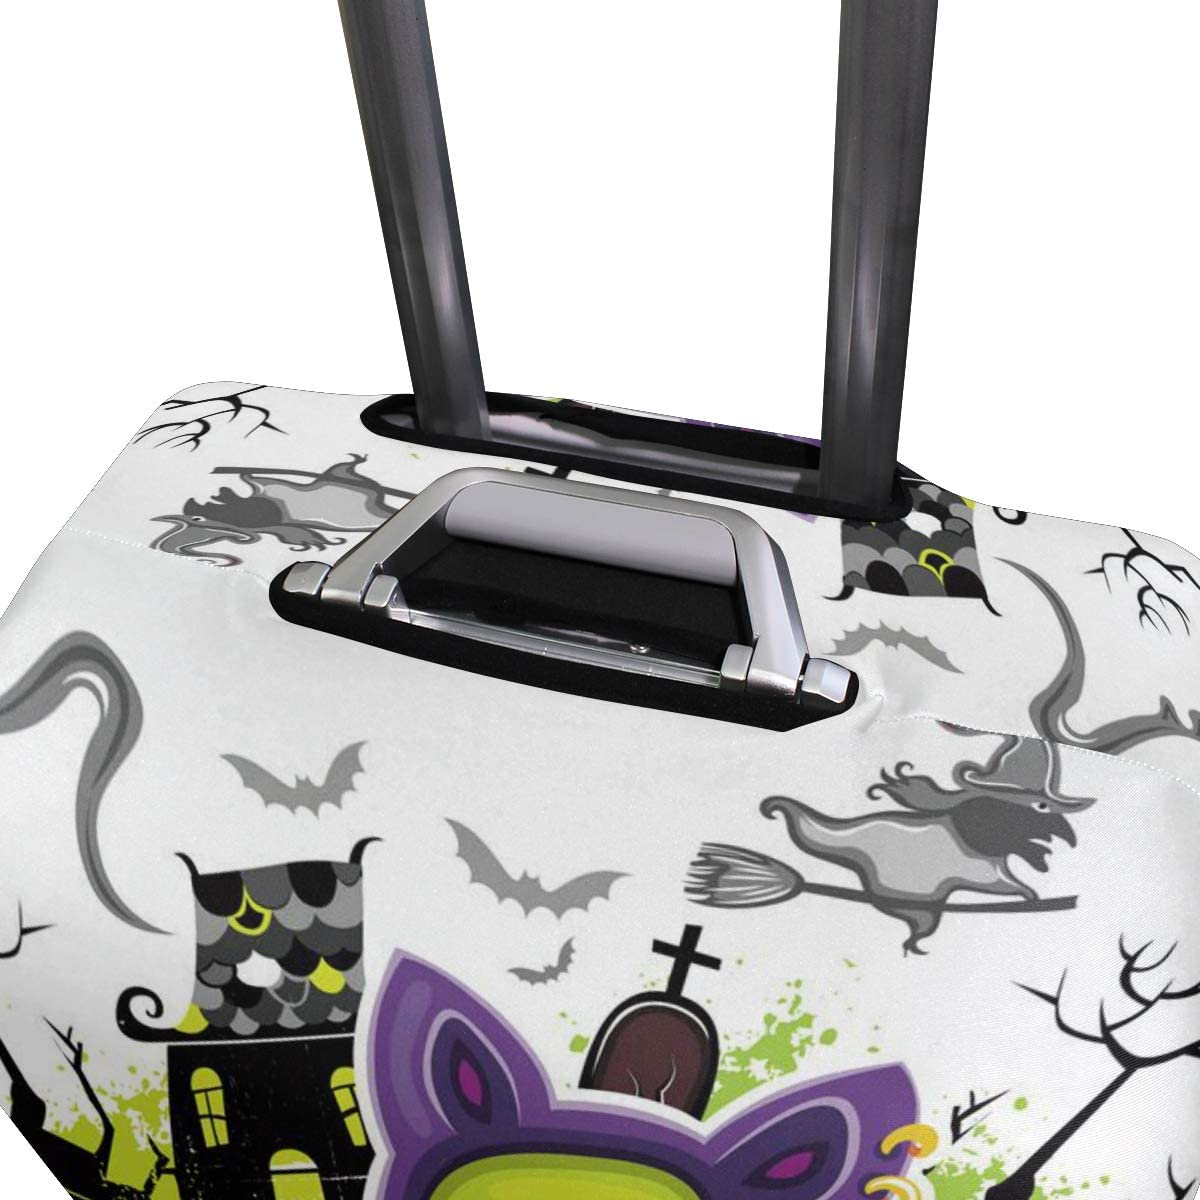 ALAZA Luggage Protector,Halloween Green Cat Elastic Travel Luggage Suitcase Cover,Washable and Durable Anti-Scratch Case Protective Cover for 18-32 Inches